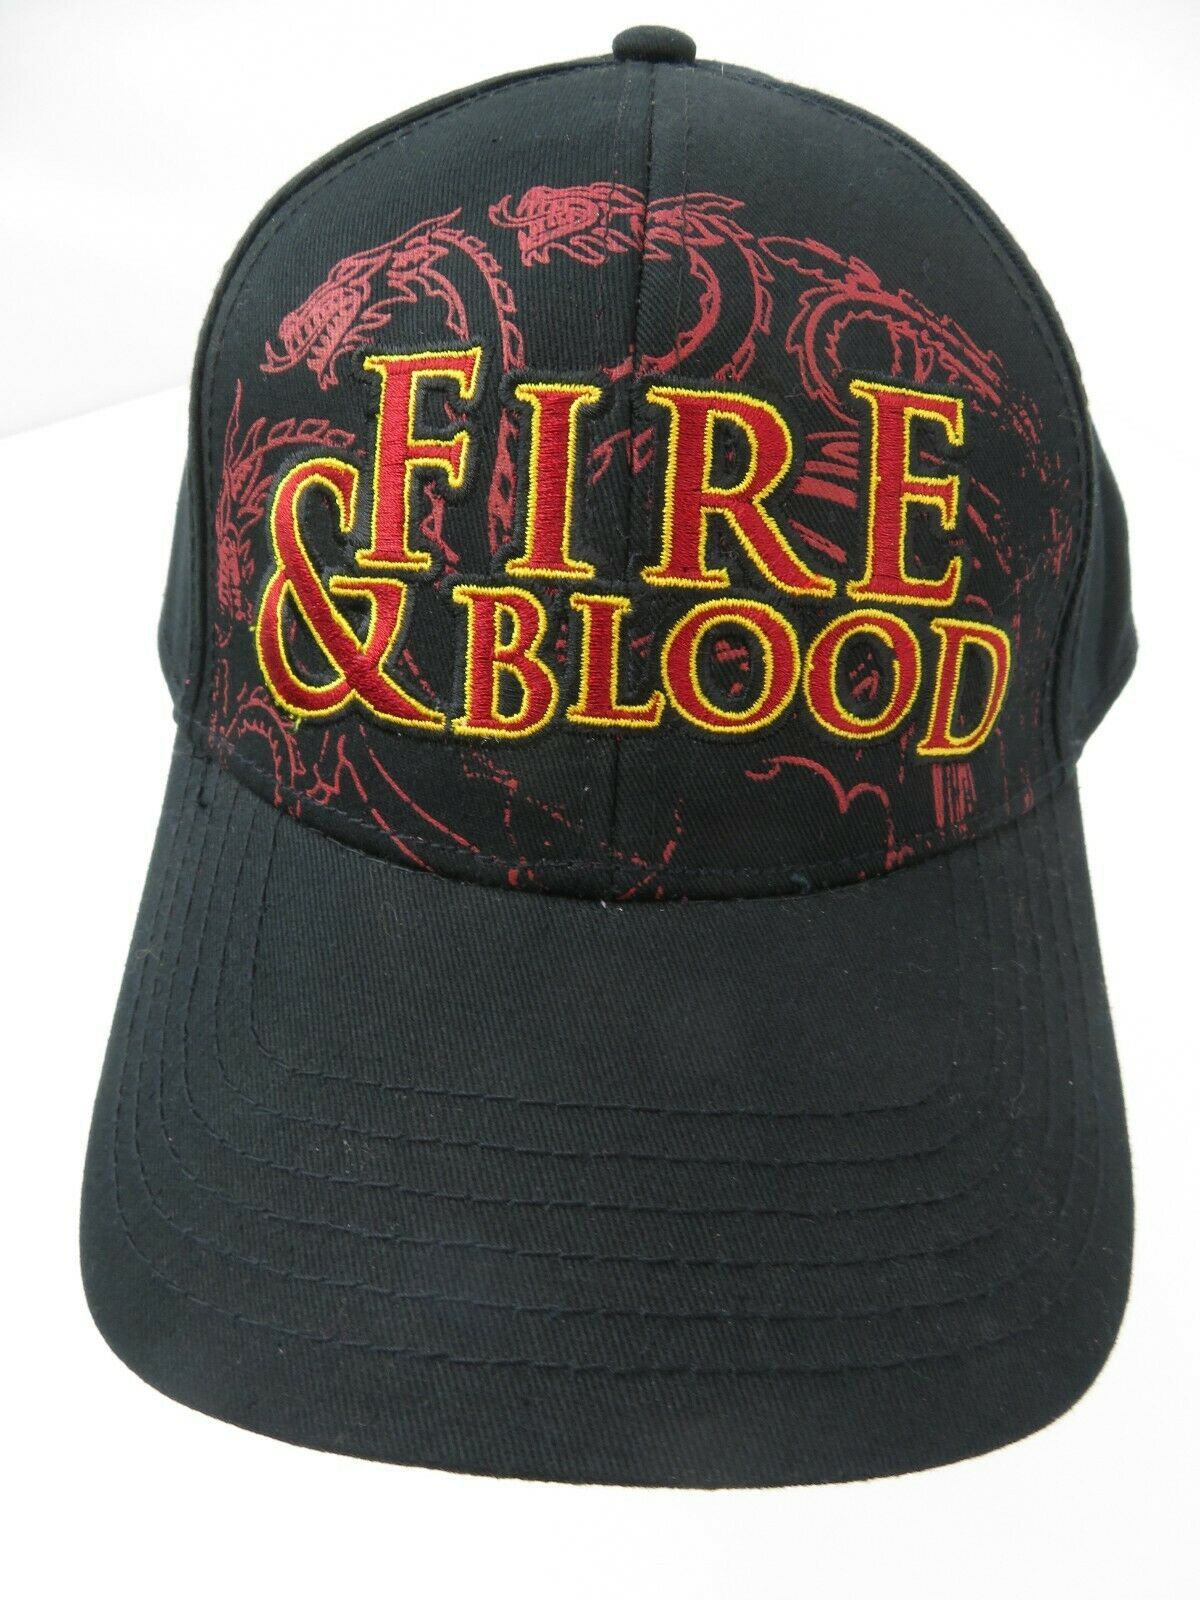 Primary image for Game of Thrones Fire & Blood Targaryen Snapback Adult Cap Hat New